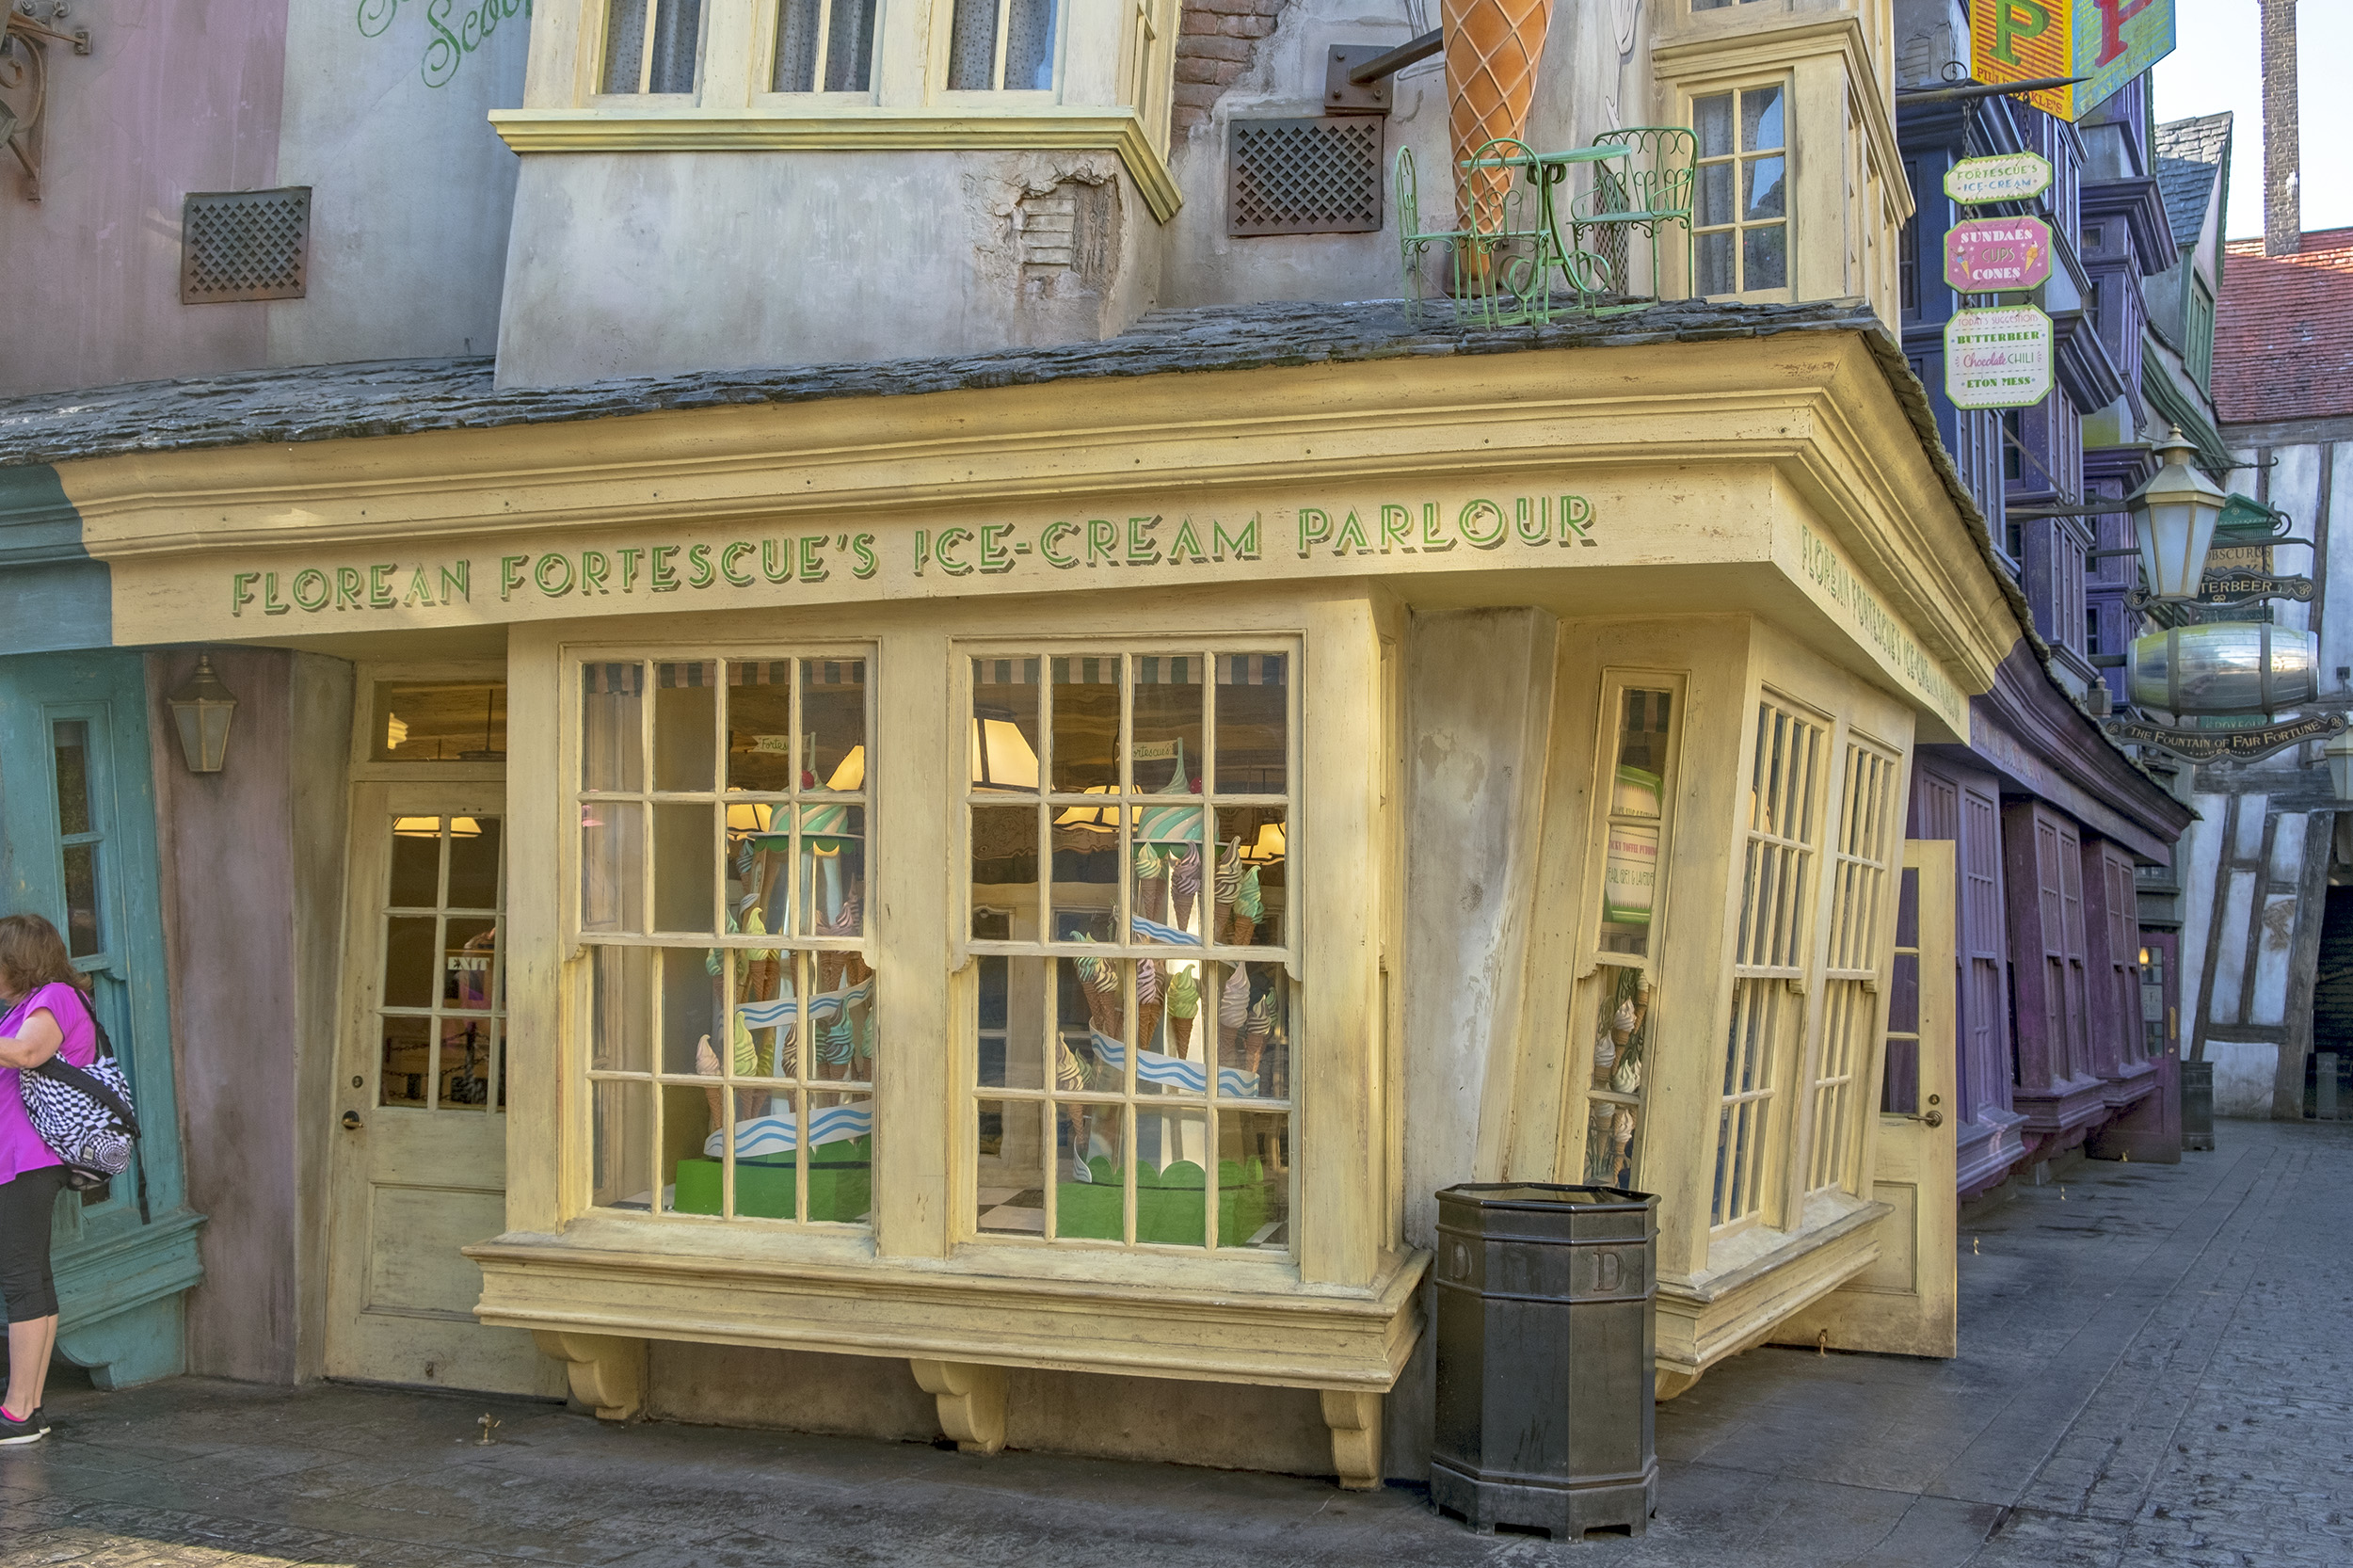 Florean Fortescues Ice-Cream Parlour i Diagon Alley. The Wizarding World of Harry Potter.